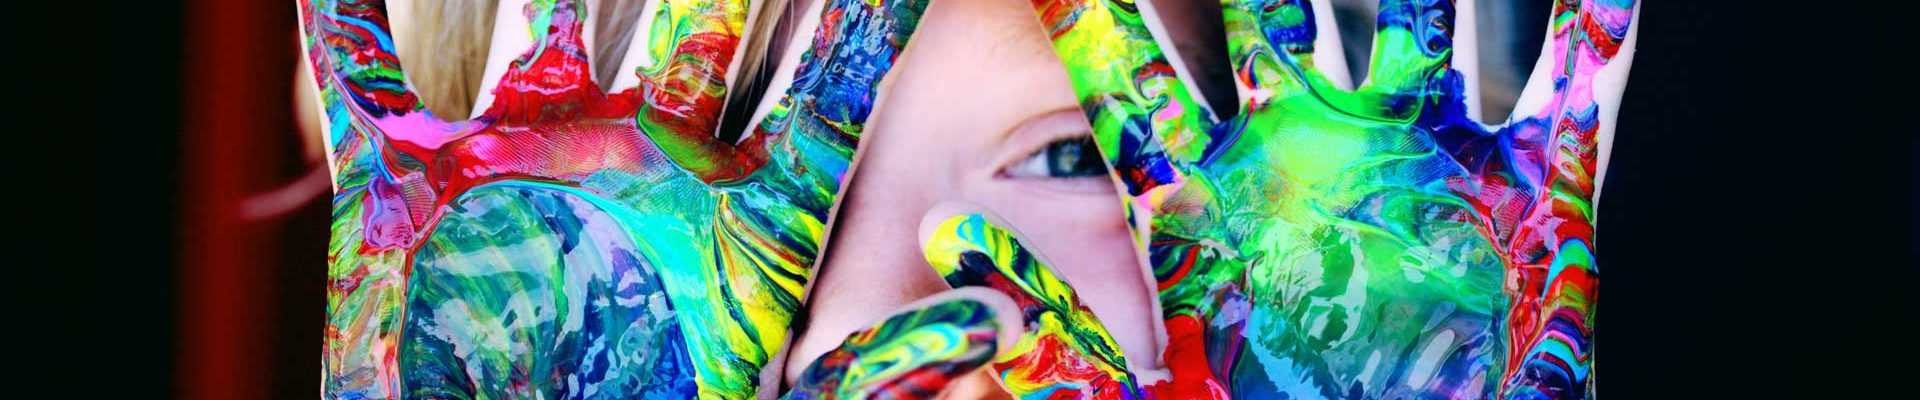 Girl with painted hand close up